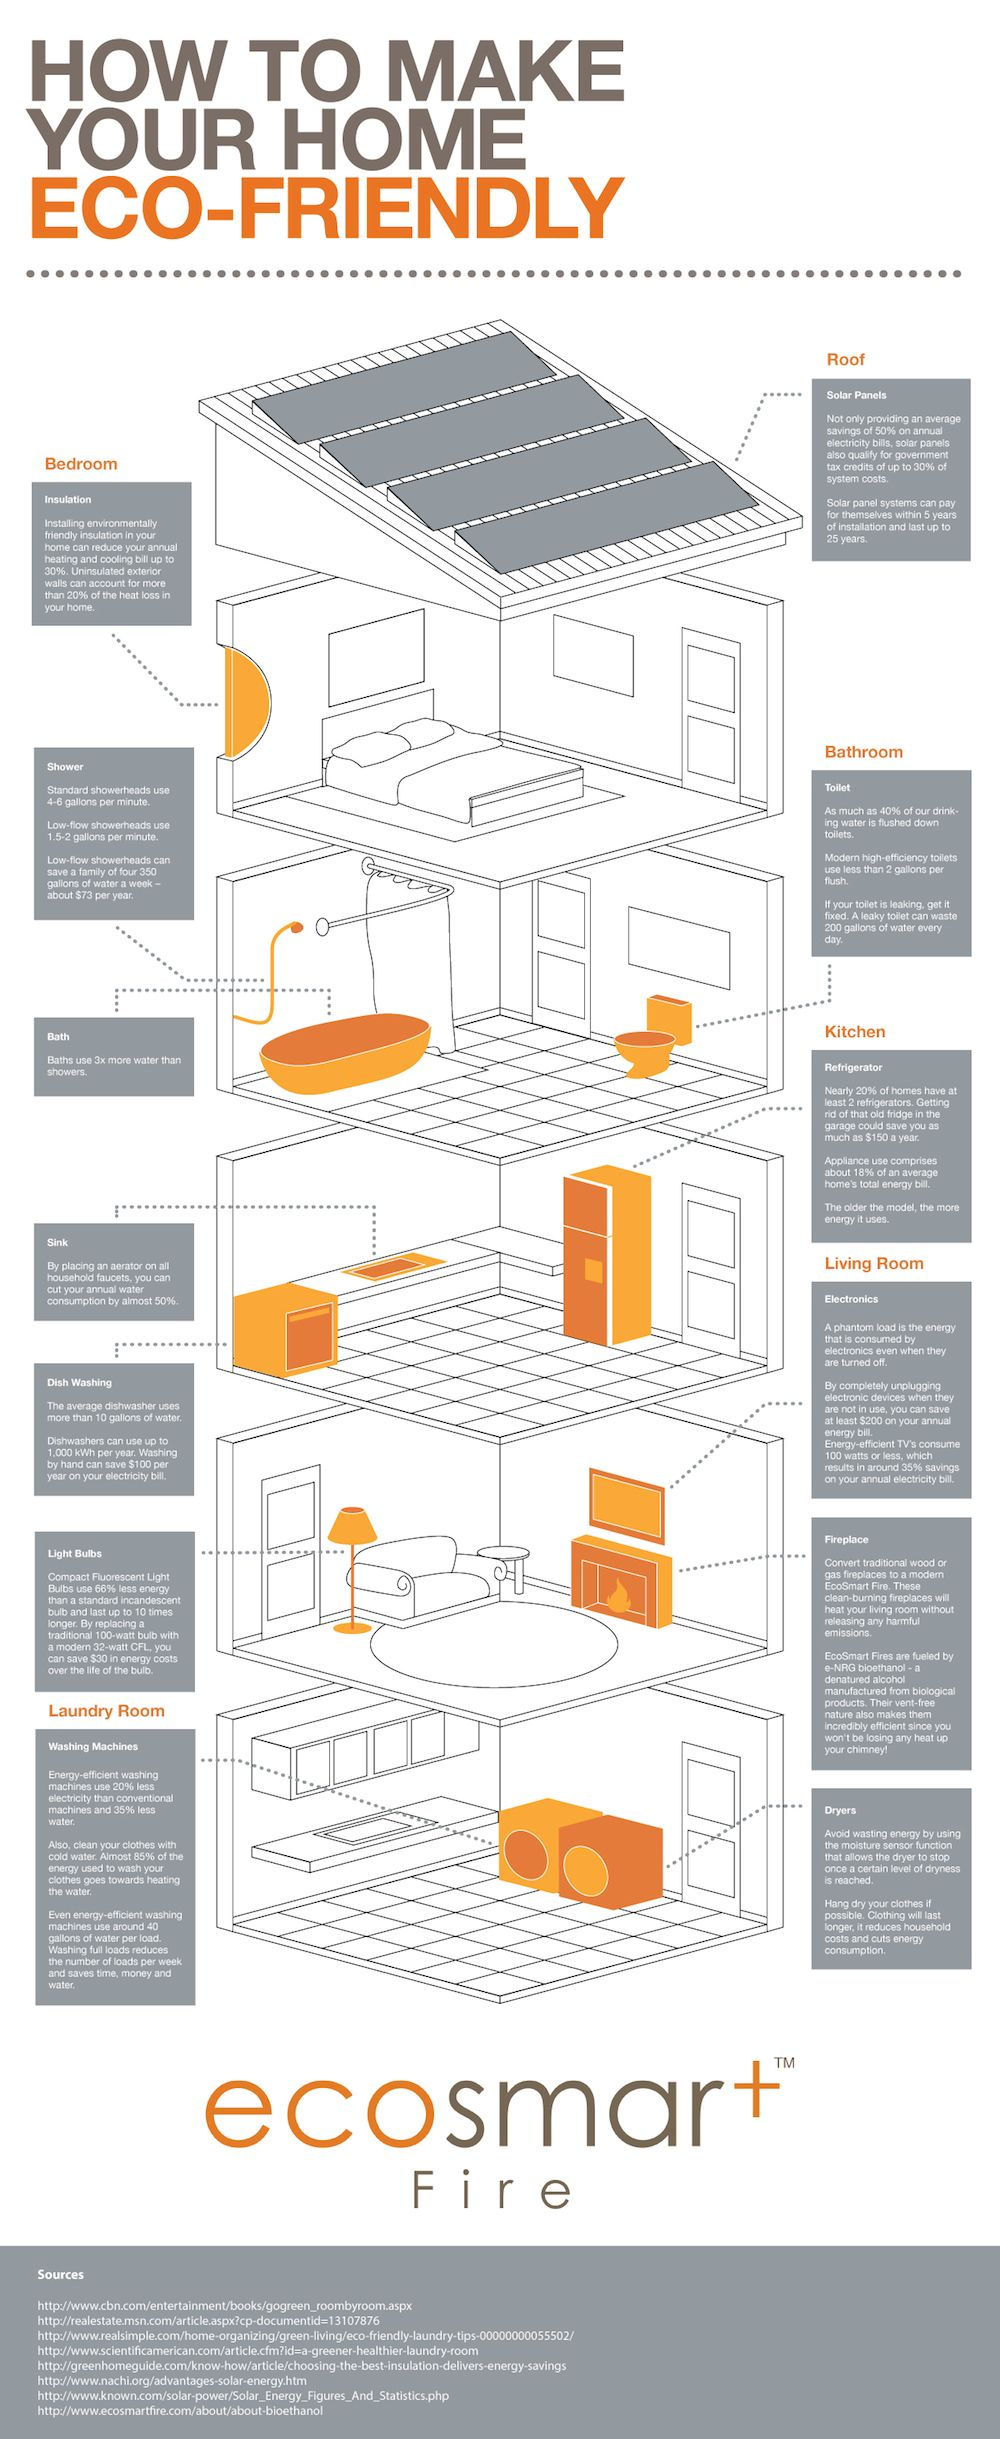 How to Make Your Home Eco-Friendly [Infographic] | Pinterest ...